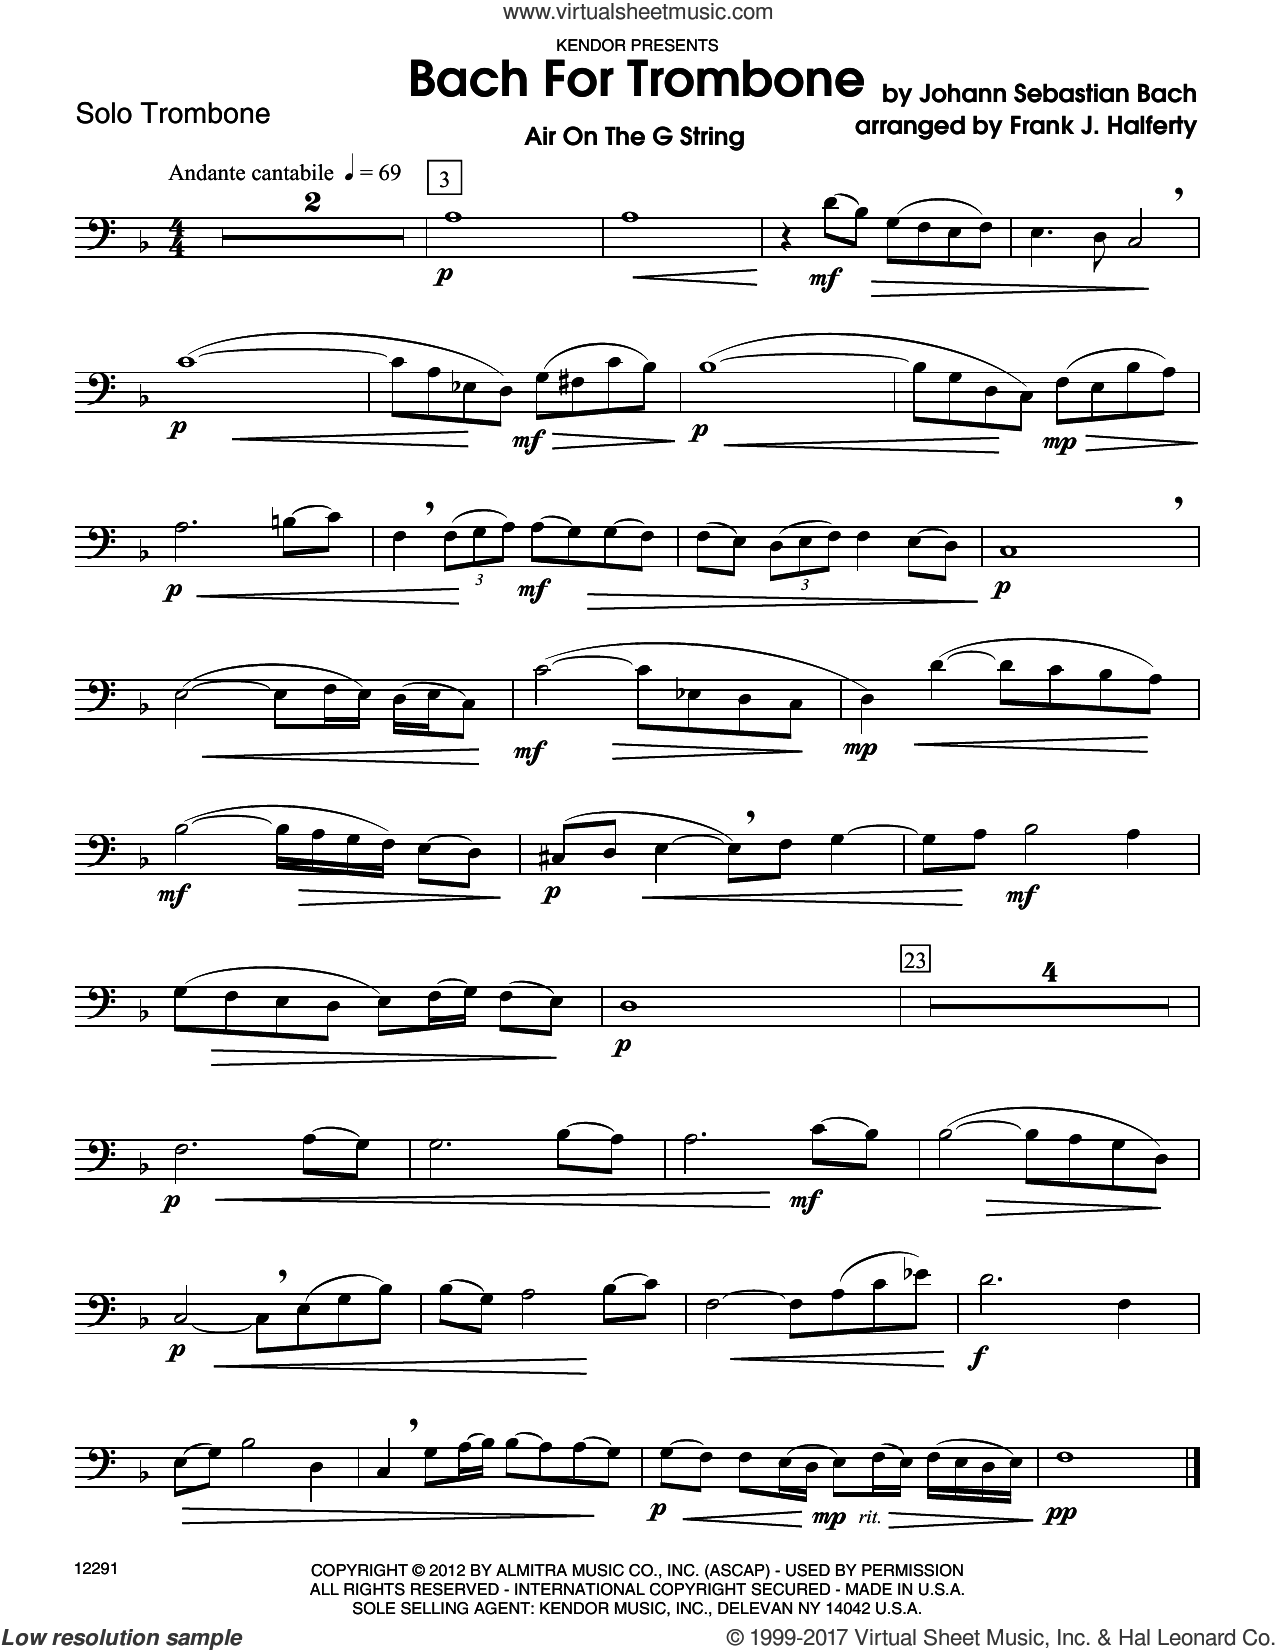 Bach - Bach For Trombone (complete set of parts) sheet music for trombone  and piano